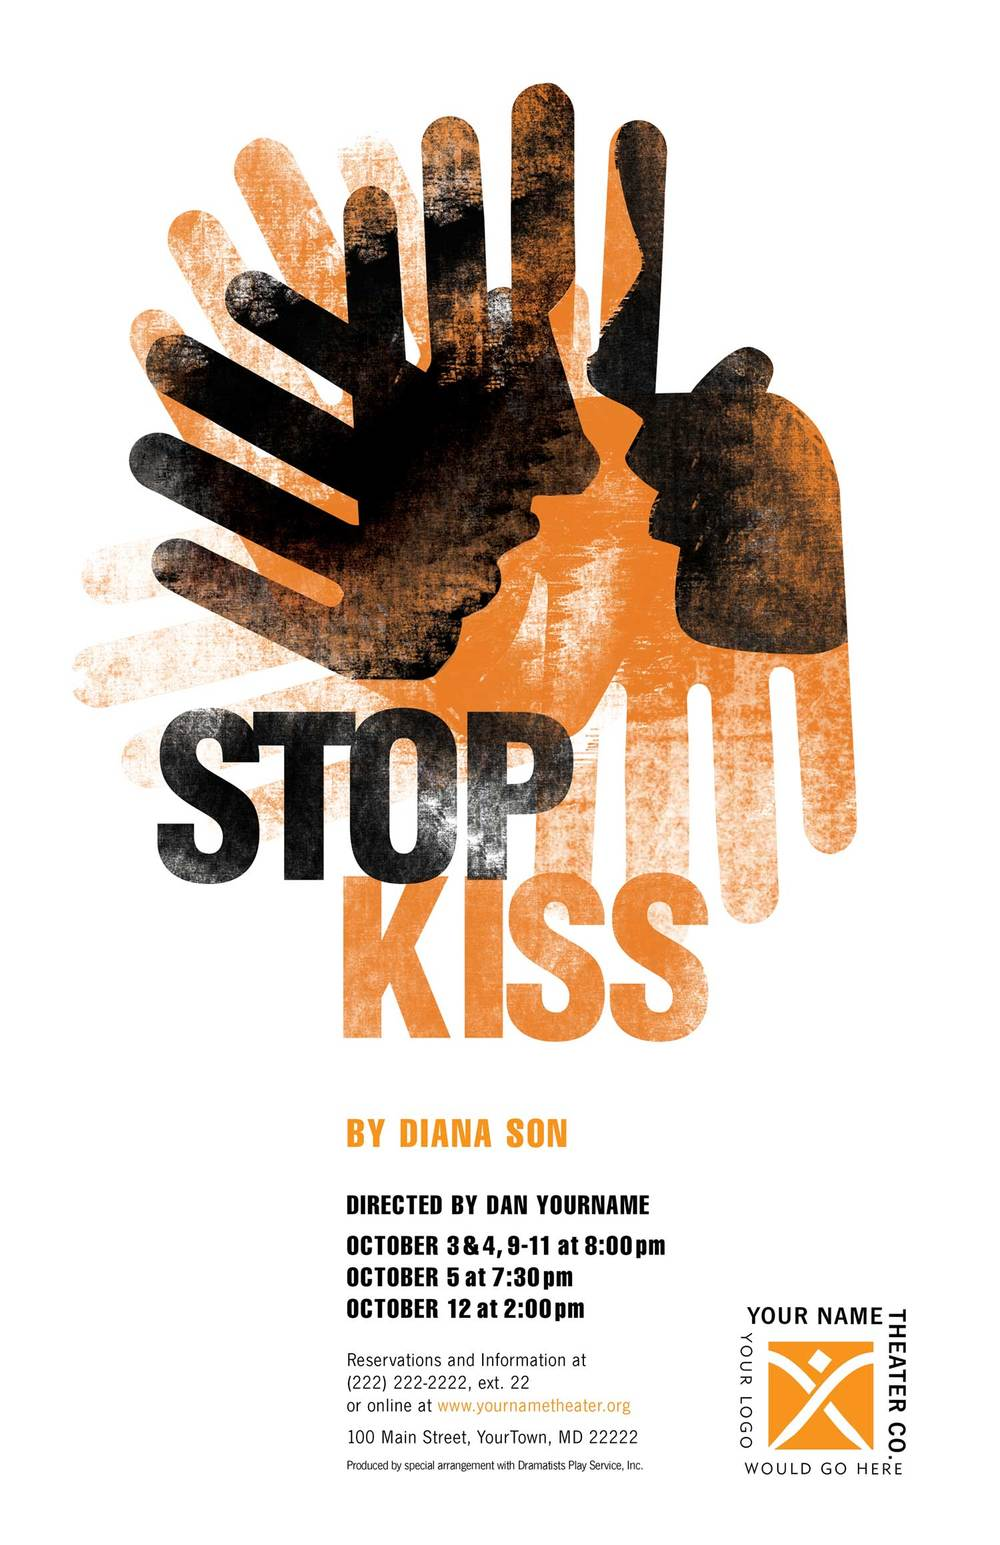 a review of stop kiss a play by diana son Diana son is the author of the plays stop kiss, satellites, boy, raw ('cause i'm a woman) and others stop kiss and satellites premiered at the public theater in nyc.